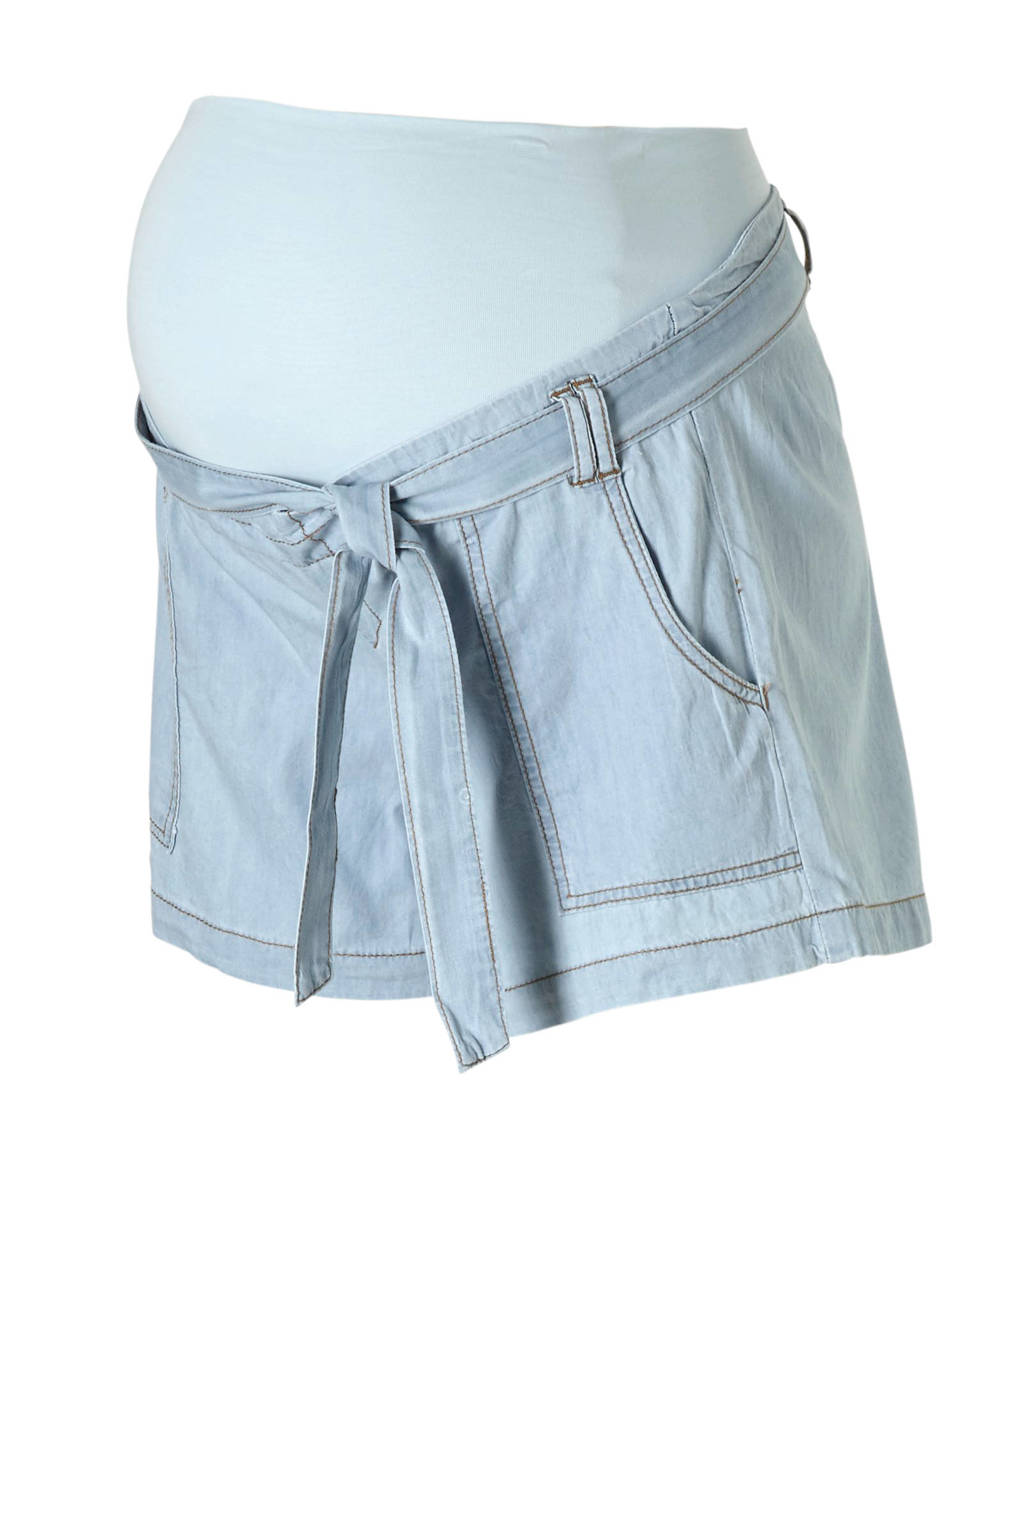 ohma! zwangerschaps jeans short, Light denim